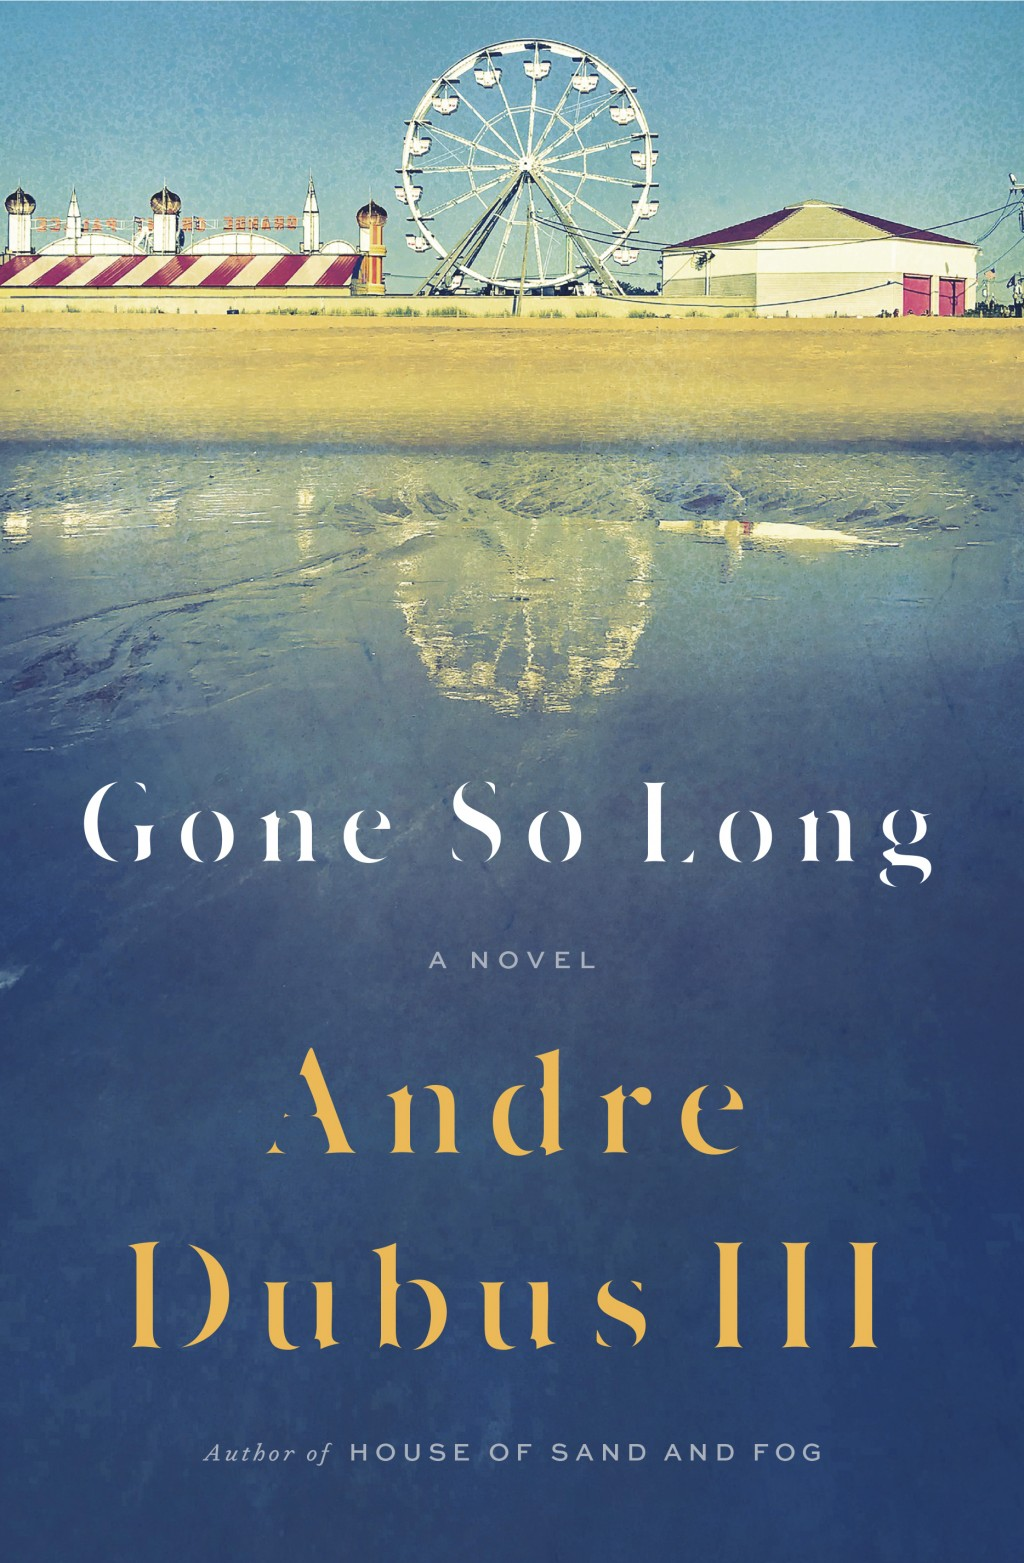 """This cover image released by W. W. Norton shows """"Gone So Long,"""" a novel by Andre Dubus III. (W. W. Norton via AP)"""